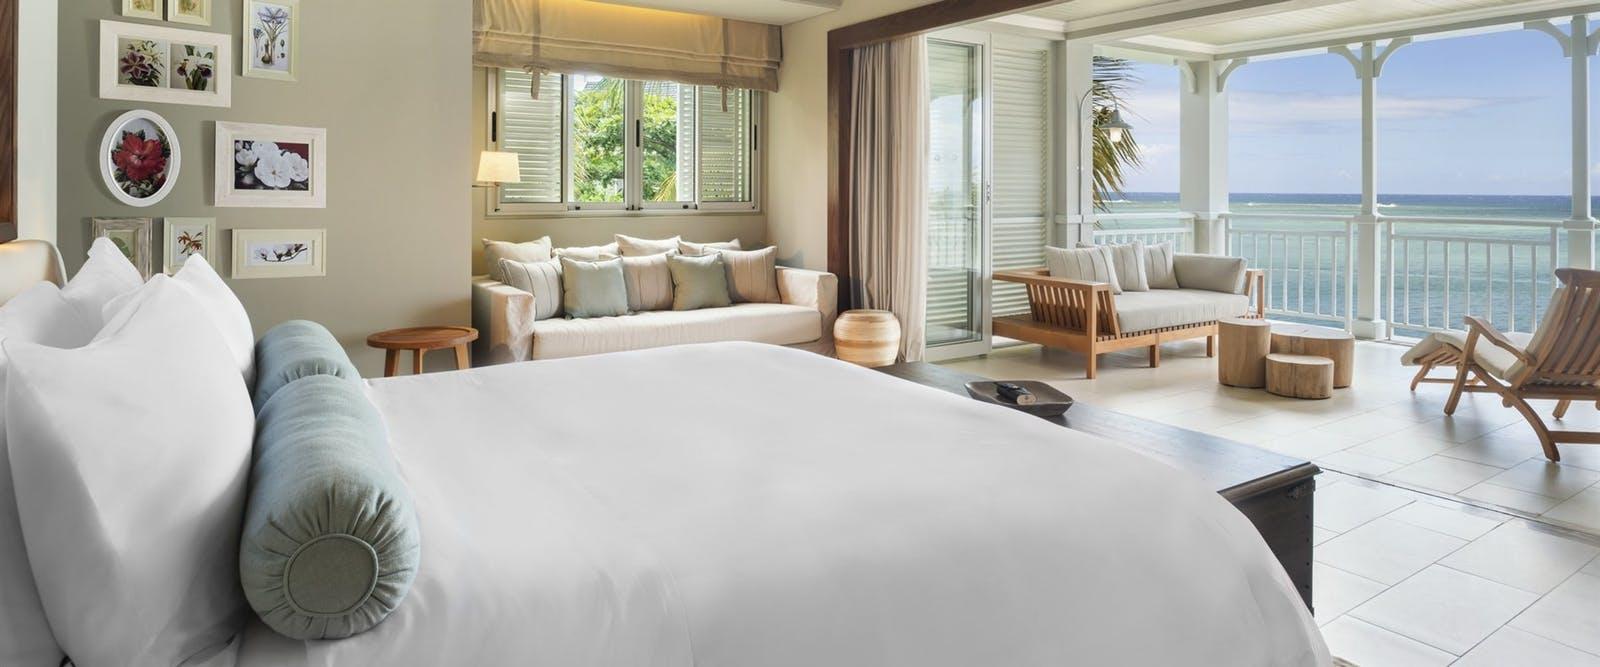 Beachfront Junior Suite at The St. Regis Mauritius Resort